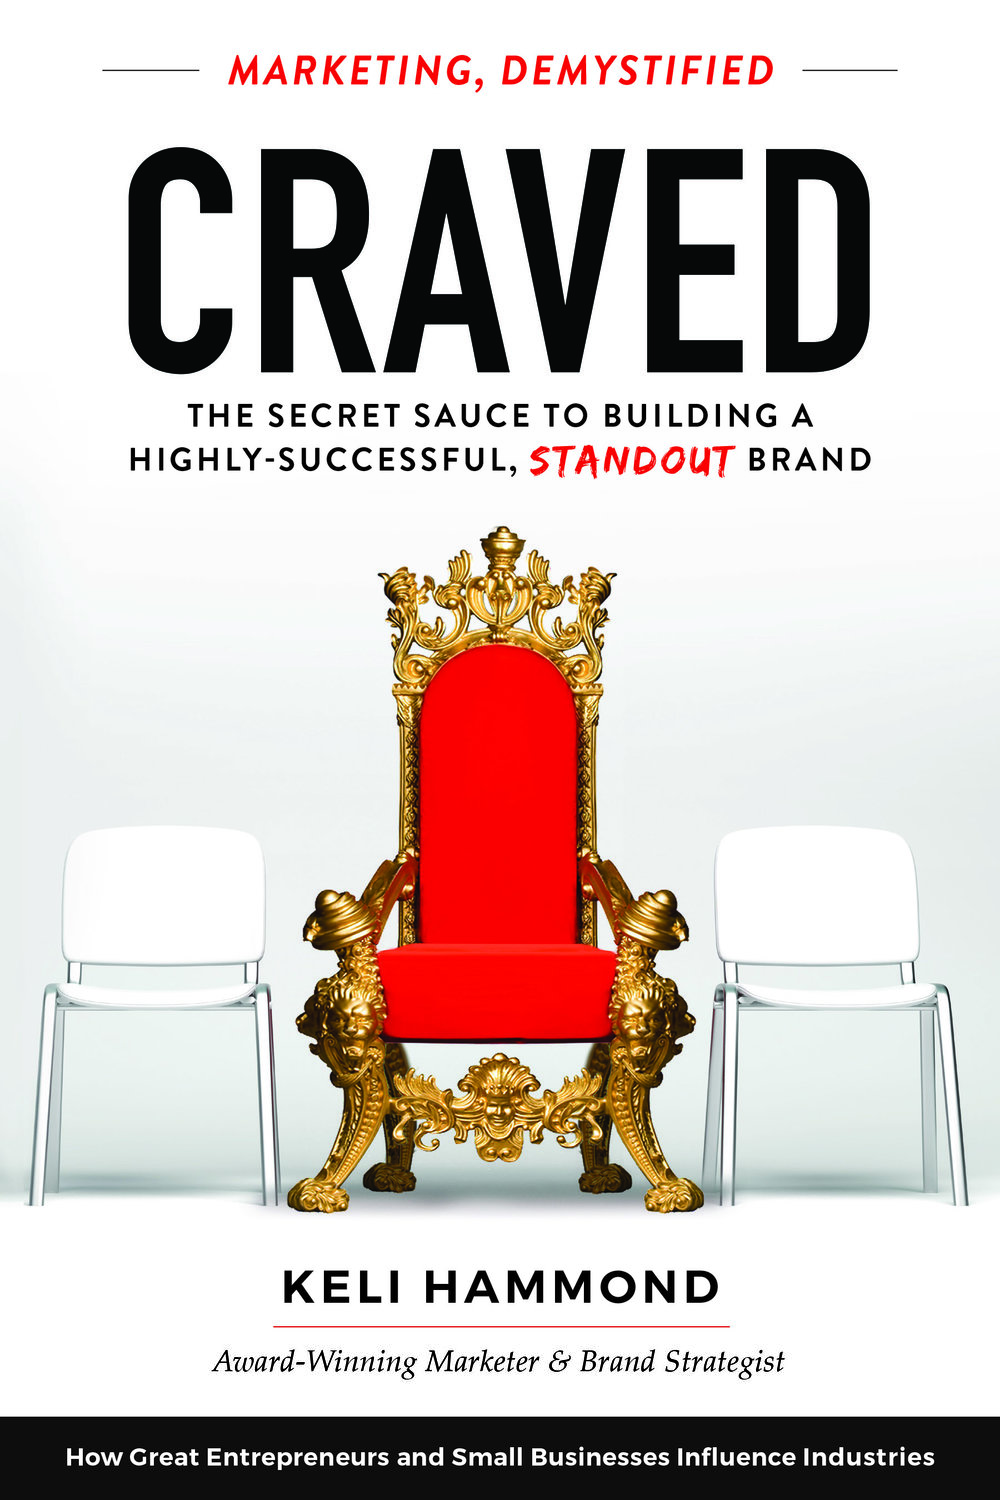 Craved book cover.jpg